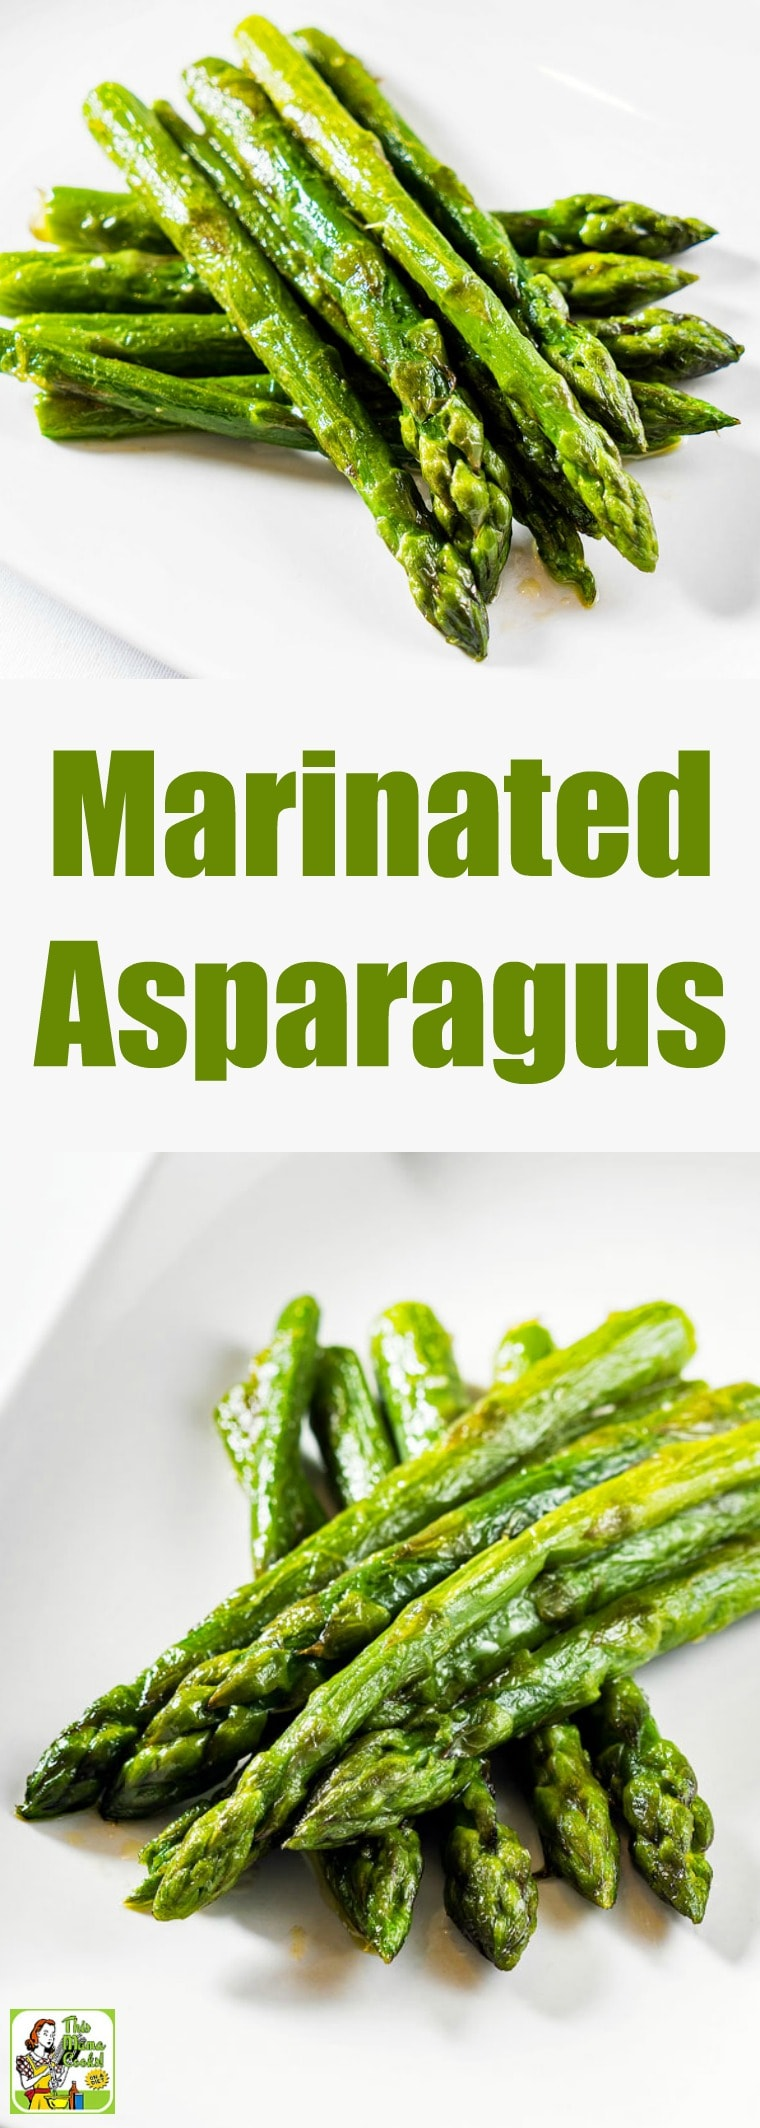 Marinated Asparagus is a roasted asparagus recipe with a delicious marinade made with wholesome rice vinegar. It\'s the perfect springtime side dish for Easter brunch or dinner. #recipes #easy #recipeoftheday #glutenfree #easyrecipe #easyrecipes #glutenfreerecipes #asparagus #sidedish